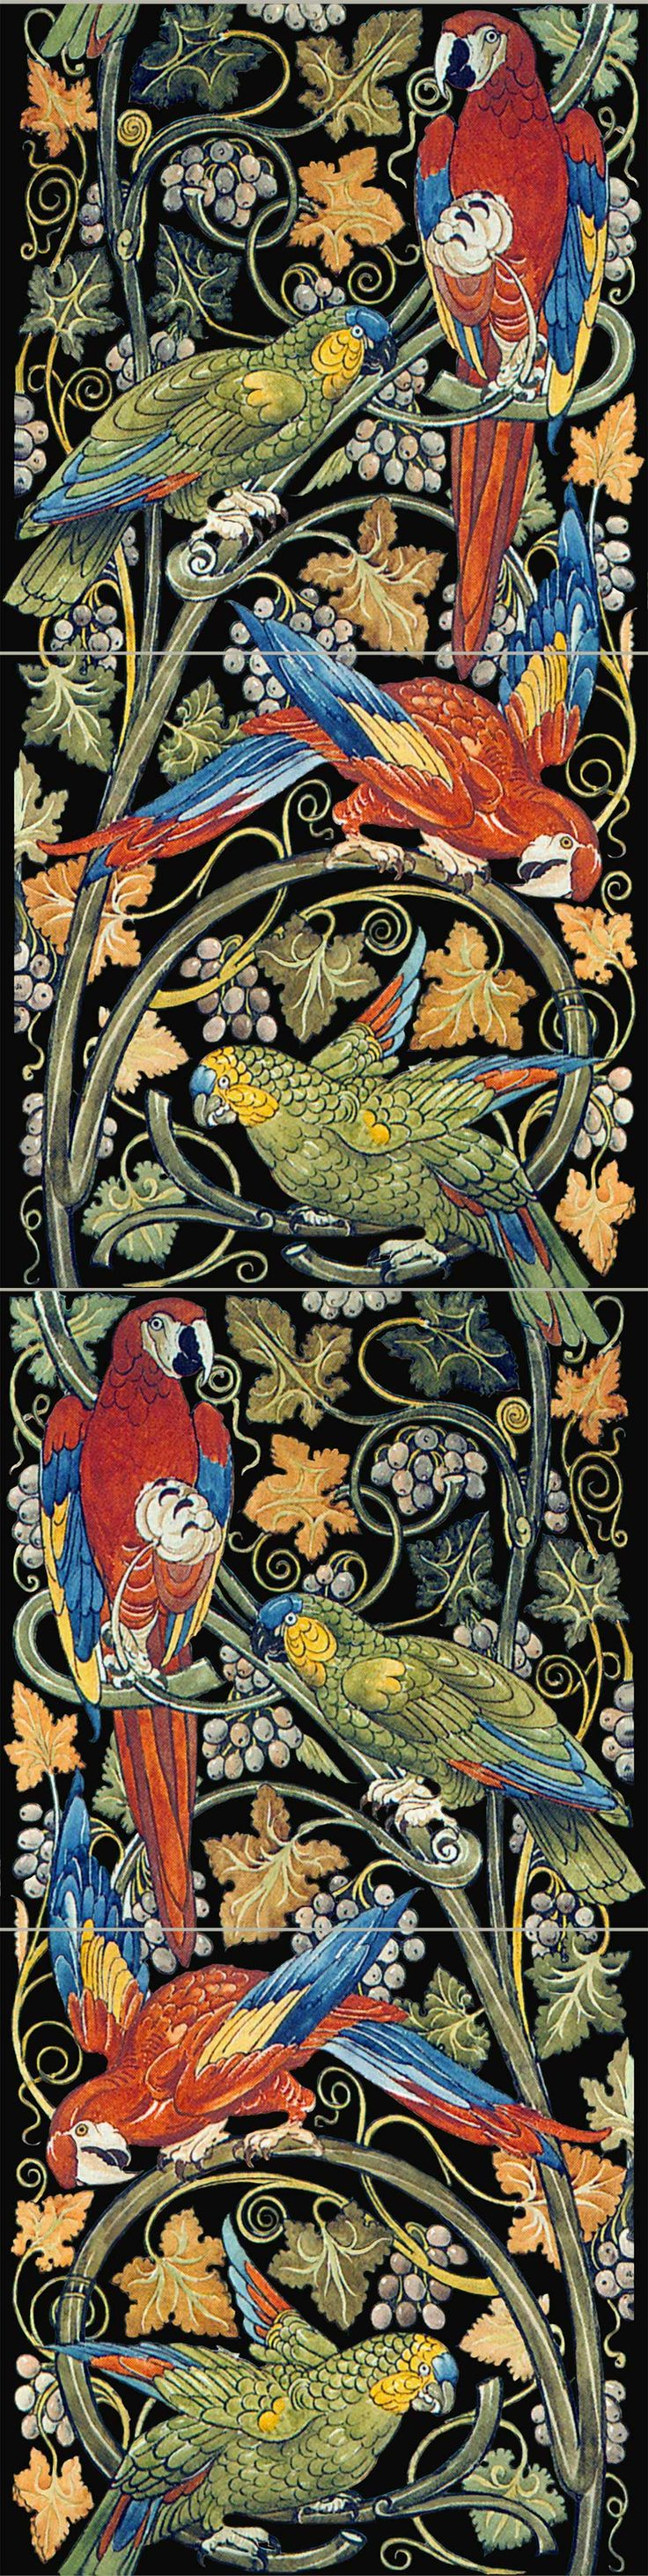 How to order William Morris Arts and Crafts Tile